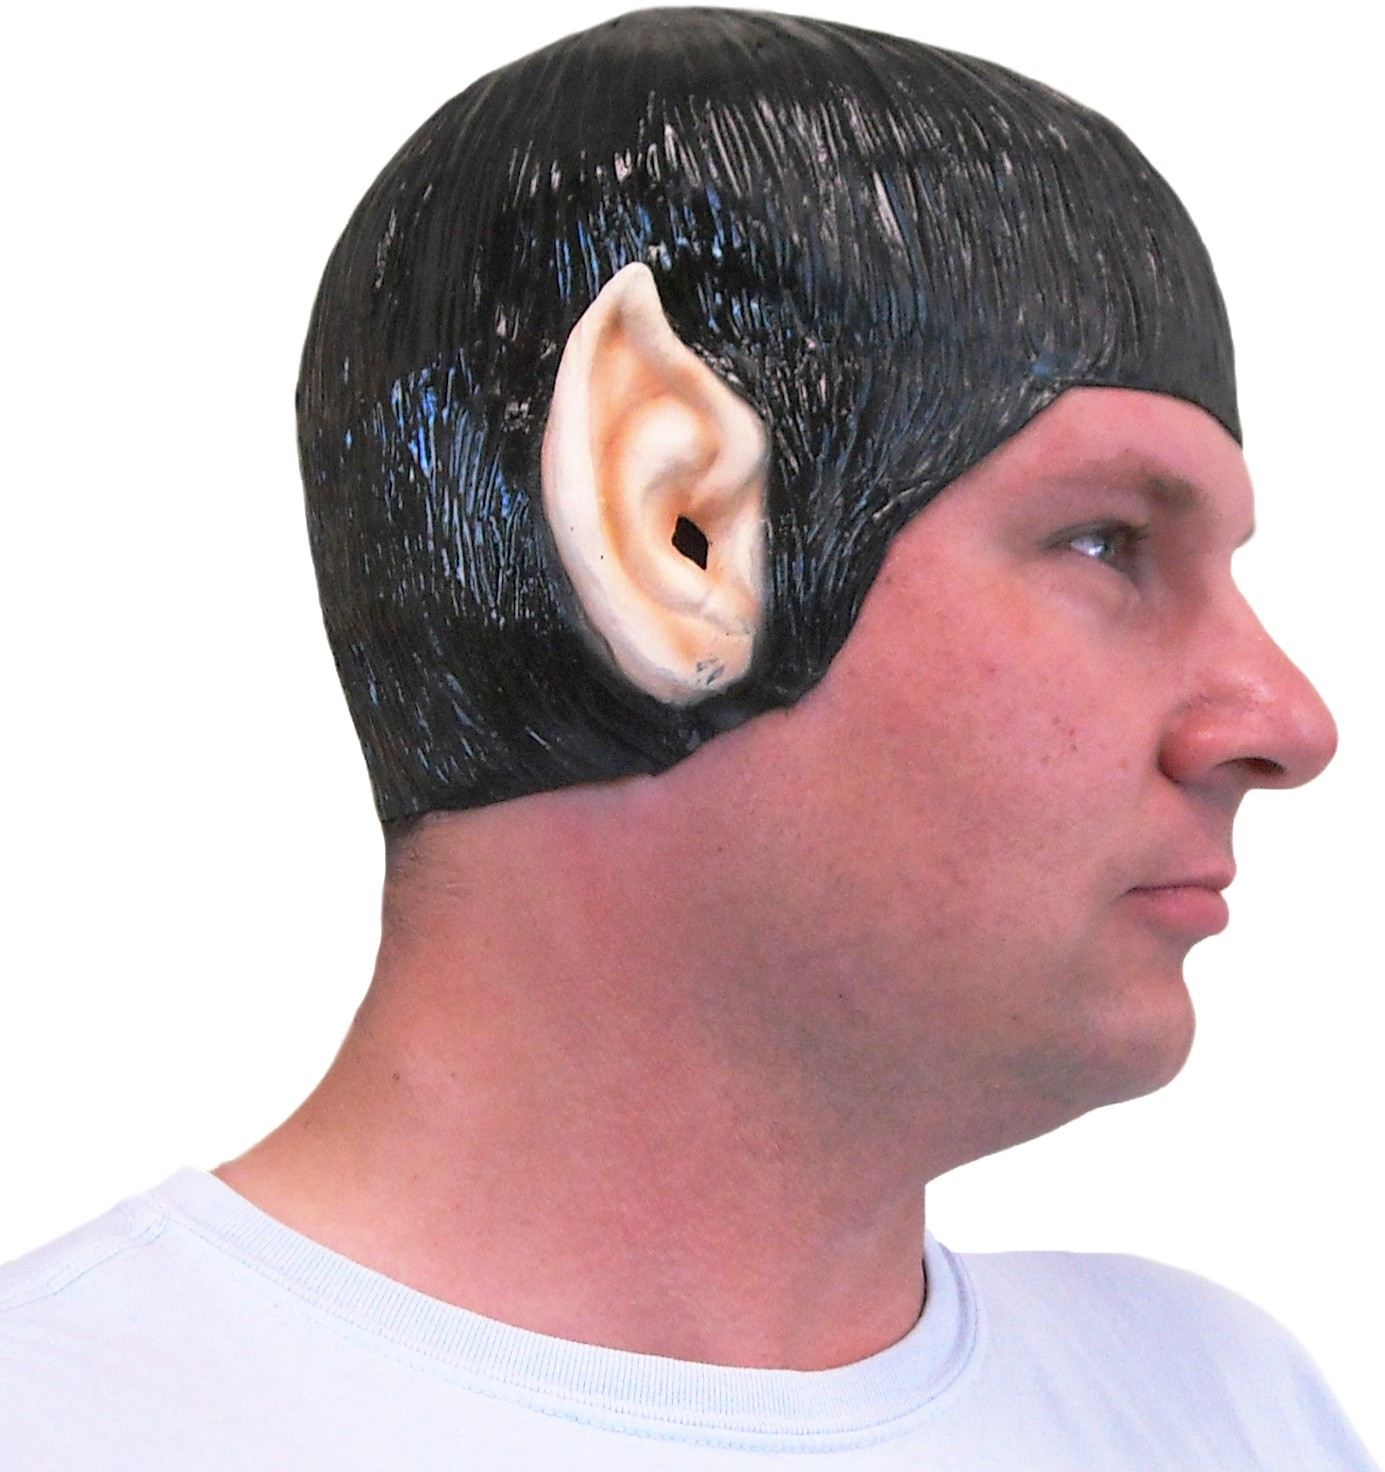 Star Trek Classic Spock Wig with Ears Menu0027s Costume Accessory | Costumes .com.au  sc 1 st  Costumes.com.au & Star Trek Classic Spock Wig with Ears Menu0027s Costume Accessory ...